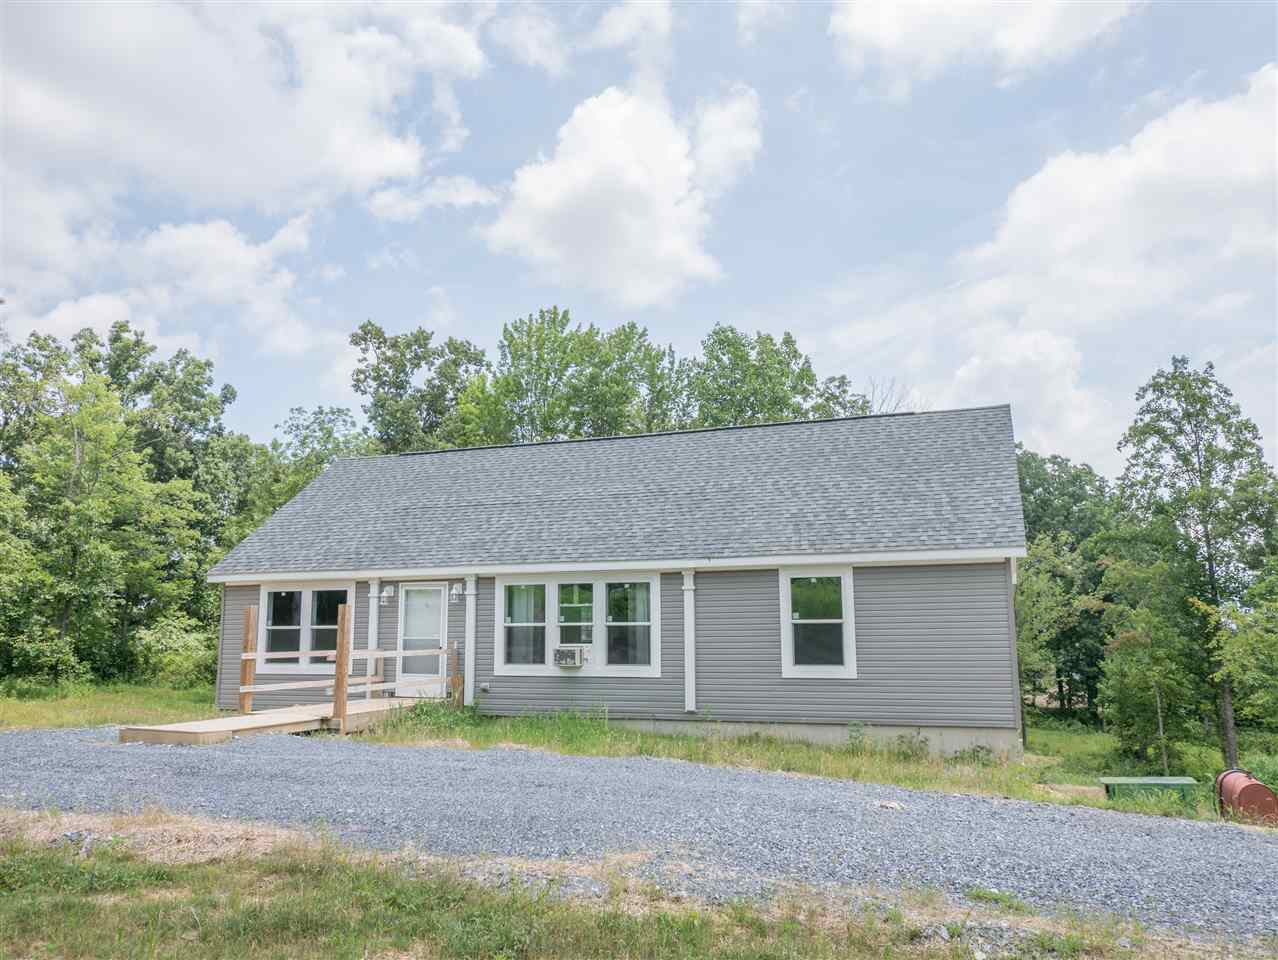 3853 BLOOMER SPRINGS RD, ELKTON, VA 22827